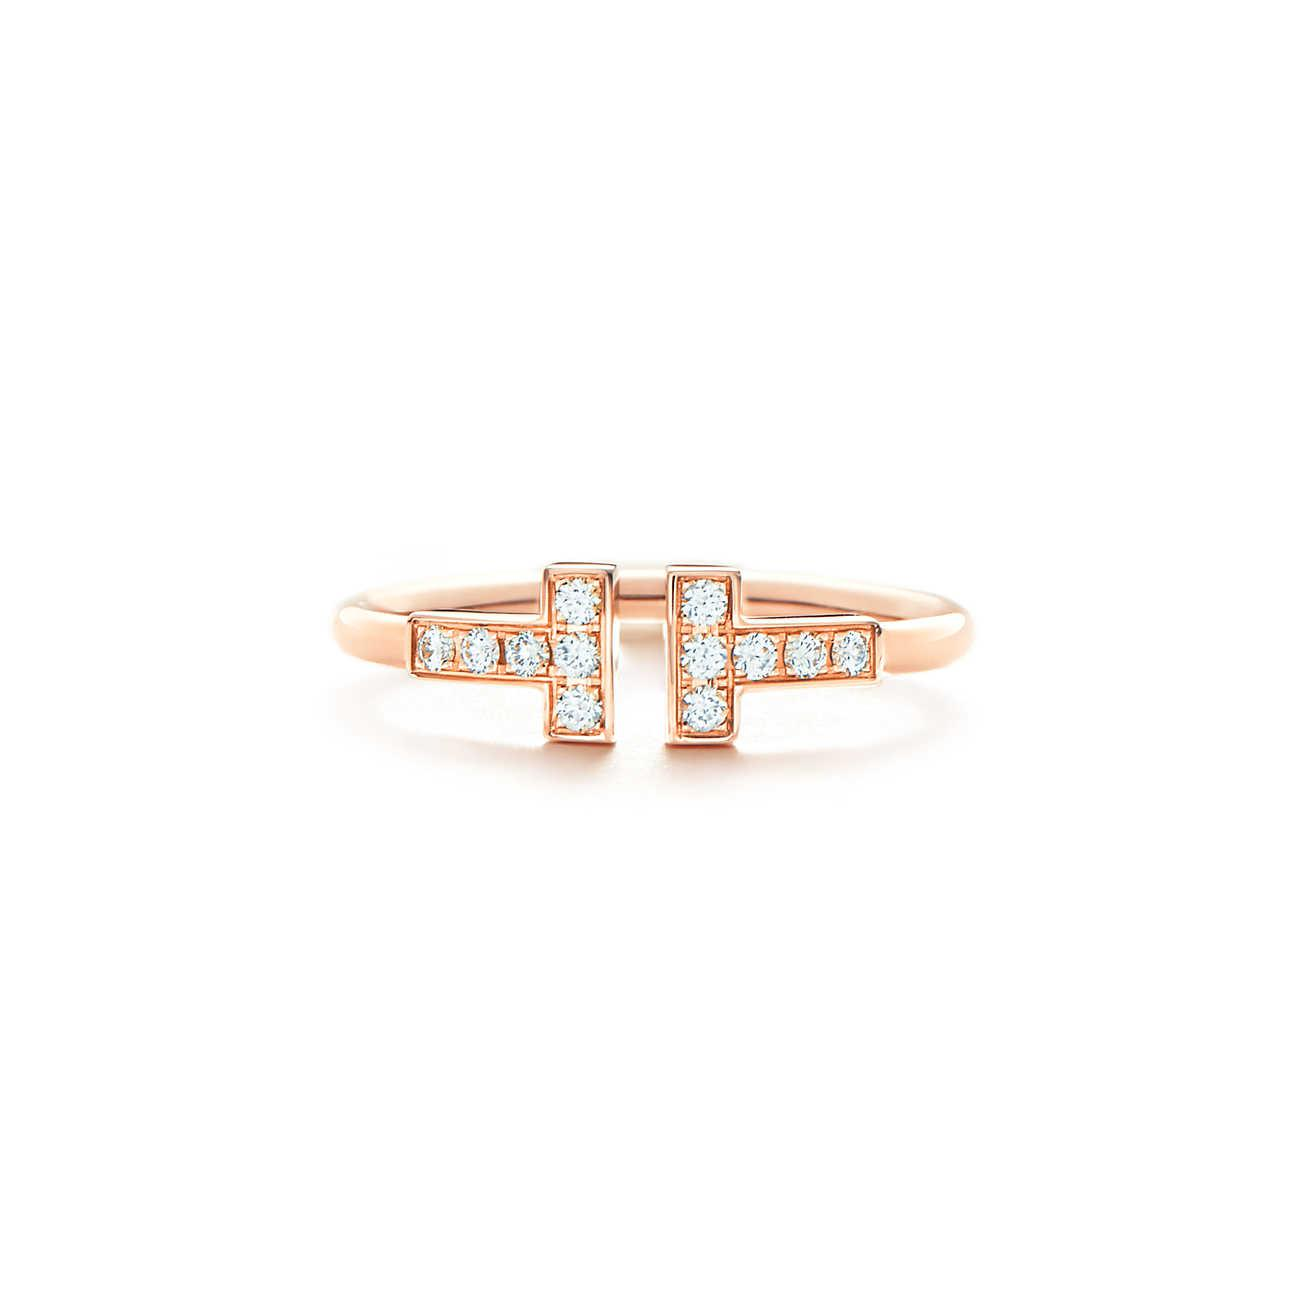 Tiffany T Two ring in sterling silver and 18k rose gold - Size 11 1/2 Tiffany & Co. mLhhS5E